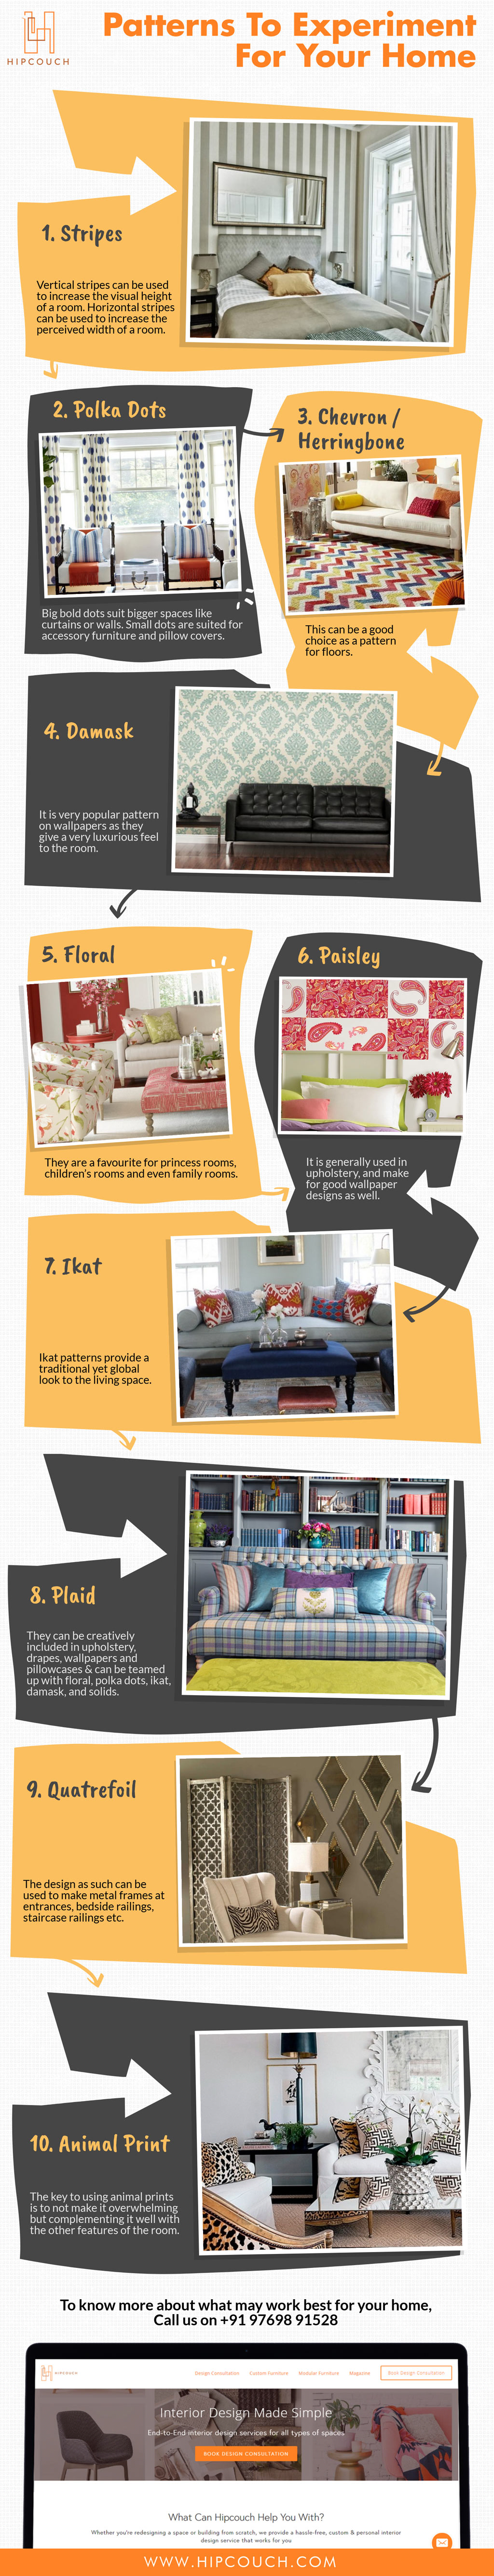 Perfecting-Patterns-for-your-homes.jpg